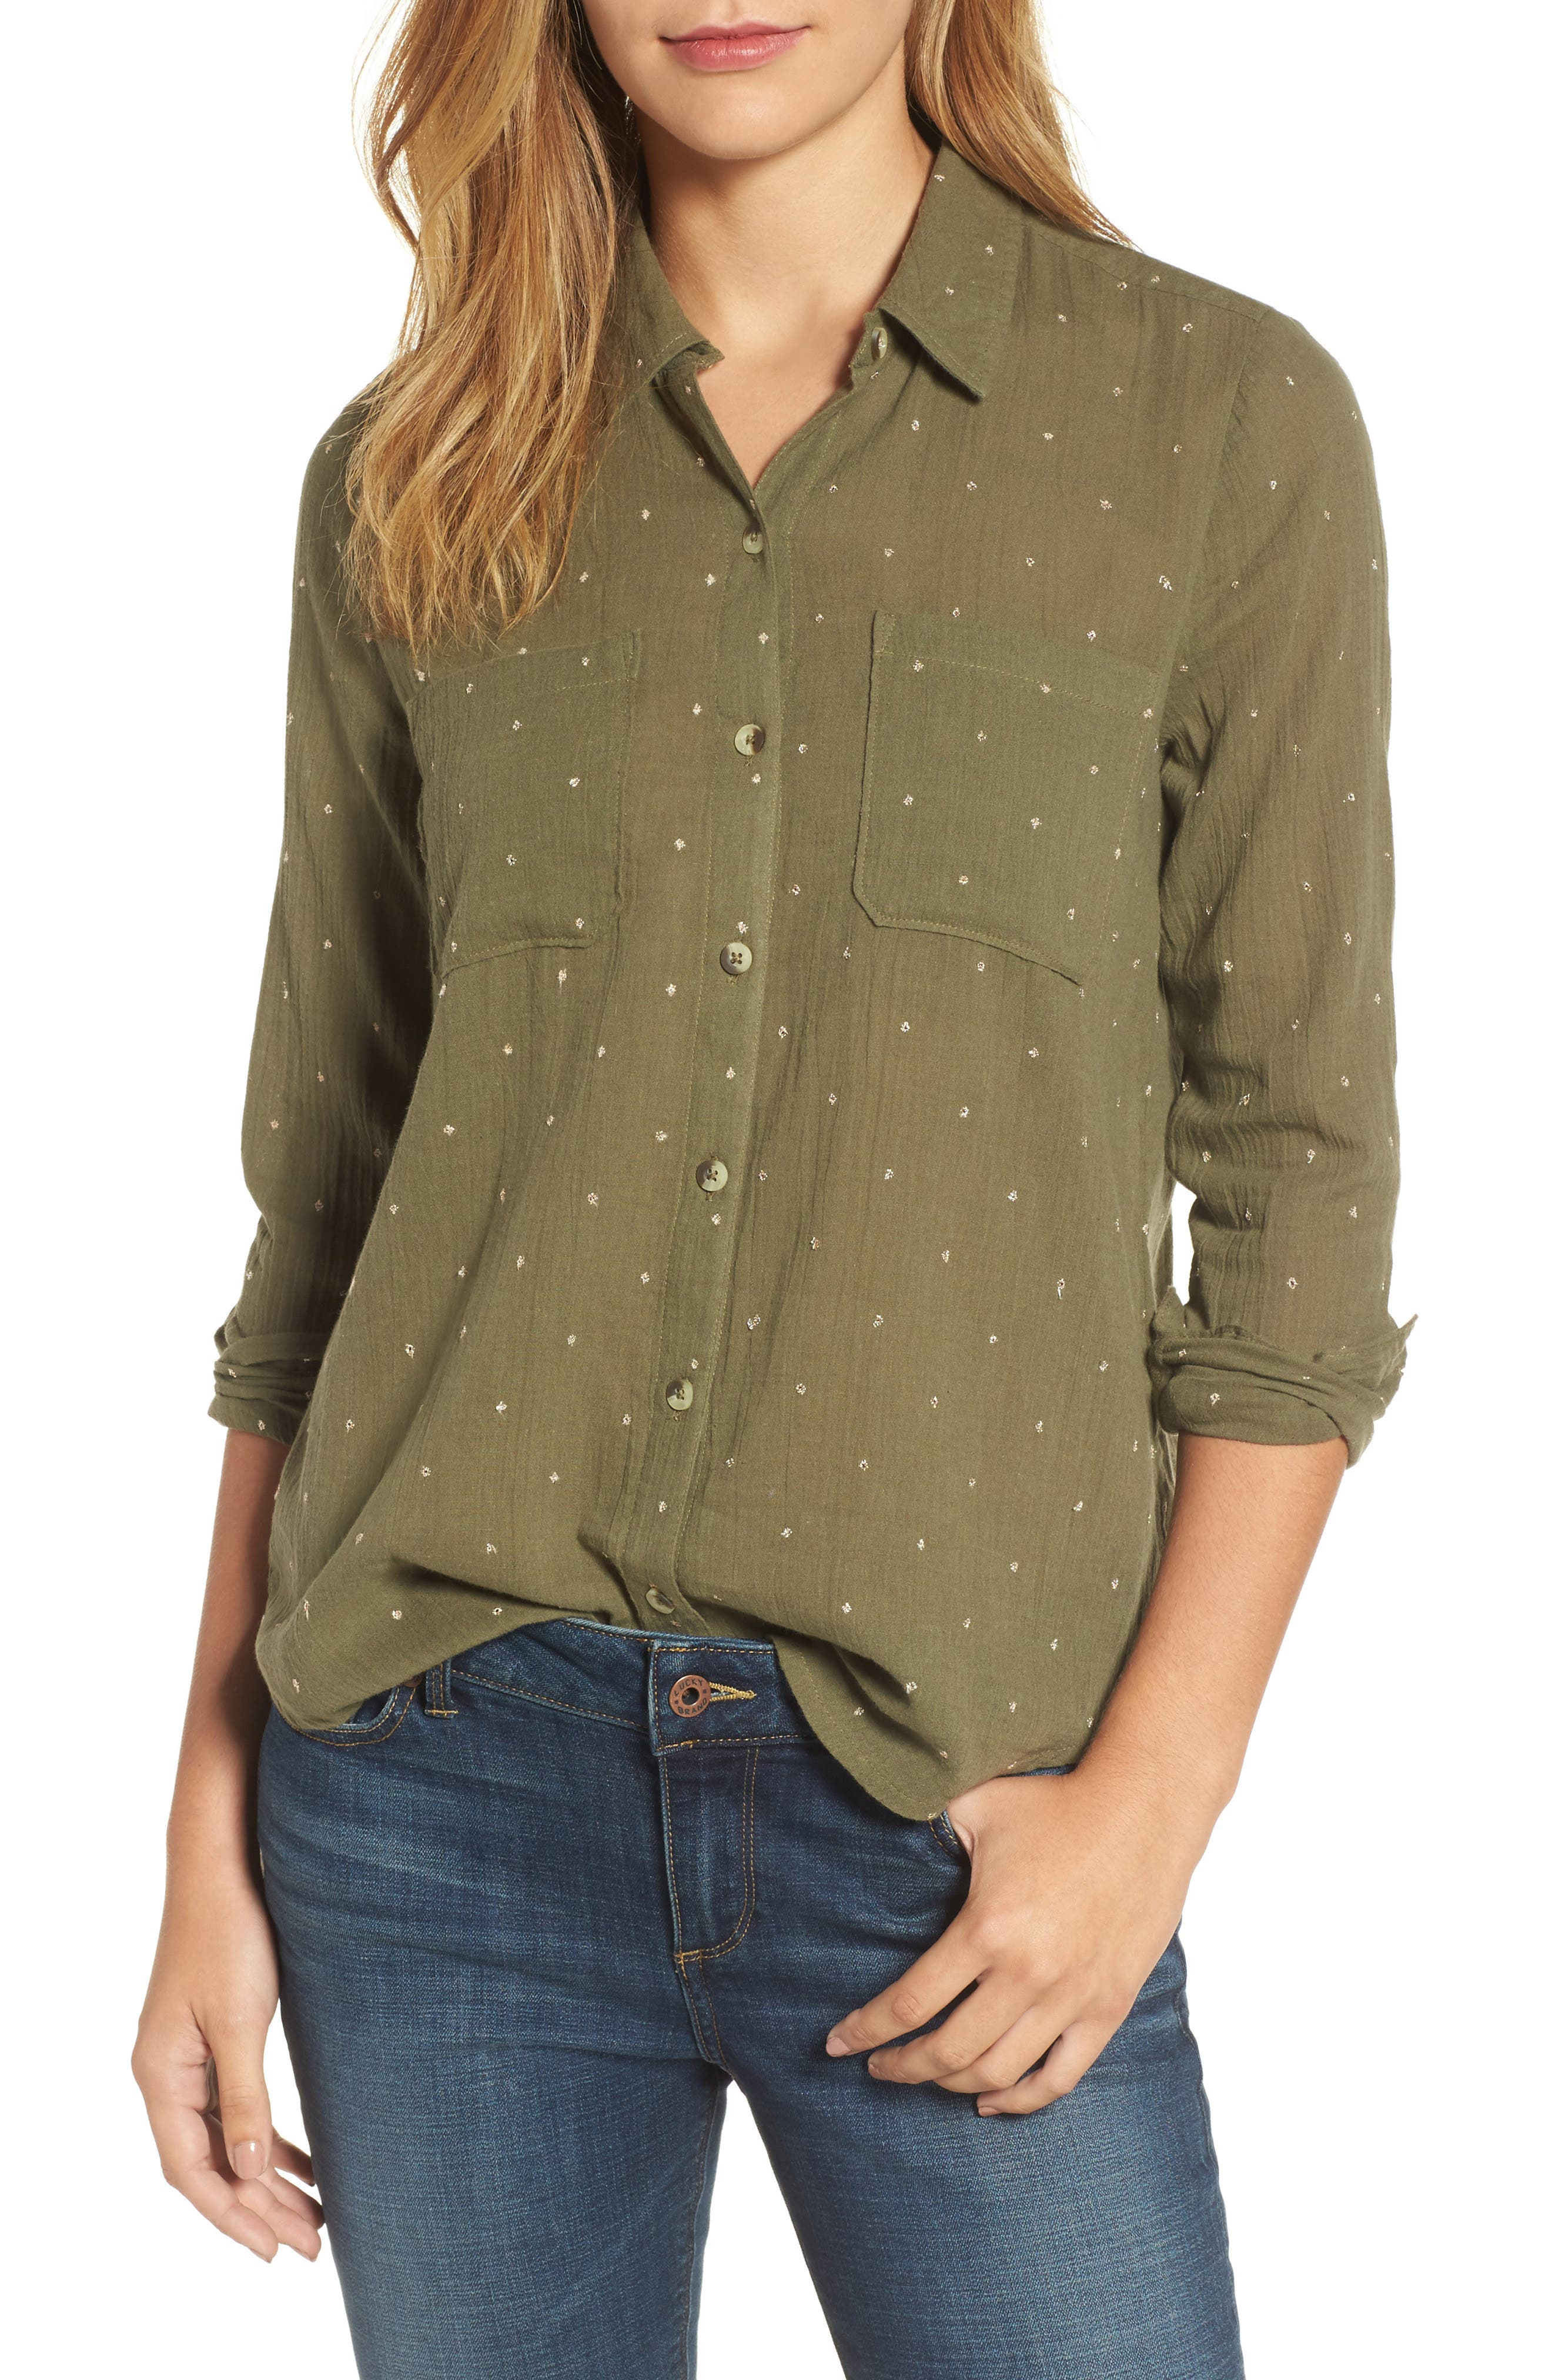 Lucky You Shirt,                             Main thumbnail 1, color,                             Dark Olive